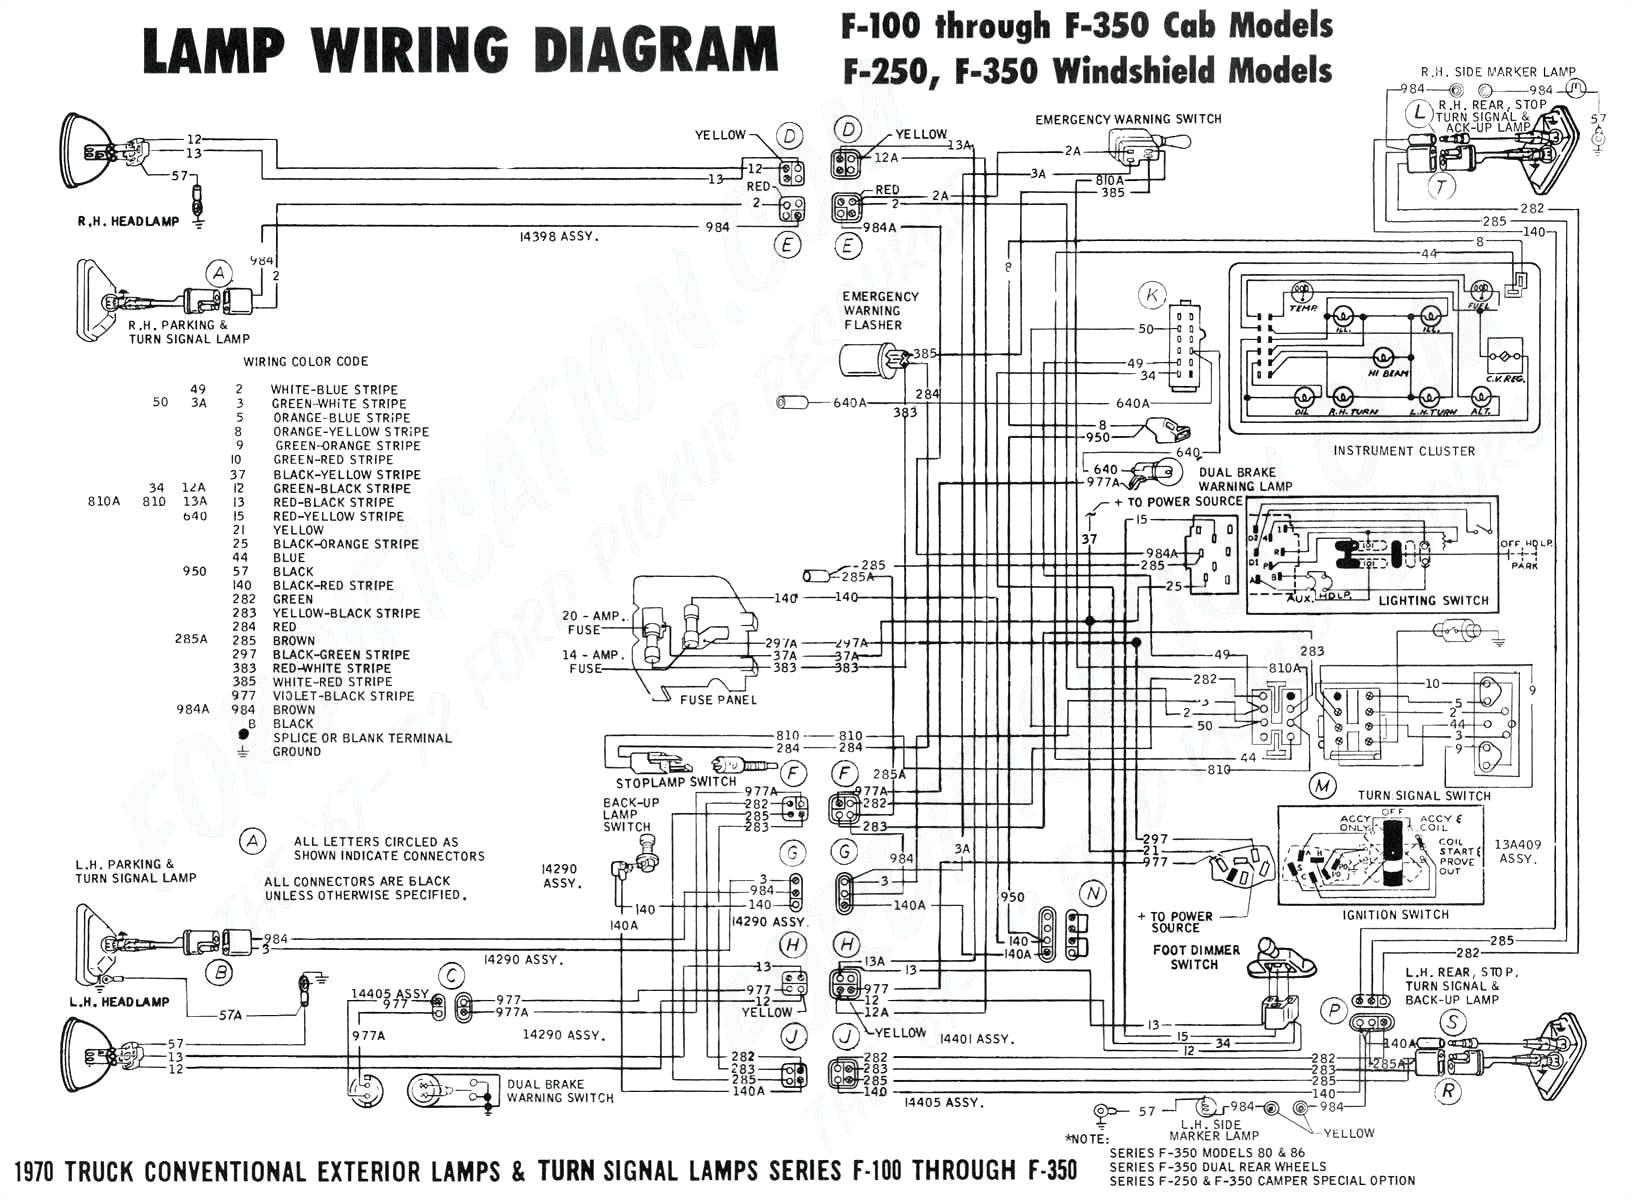 wiring diagram for electric trailer kes wiring circuit diagrams wiring diagram for electric kes wiring circuit diagrams